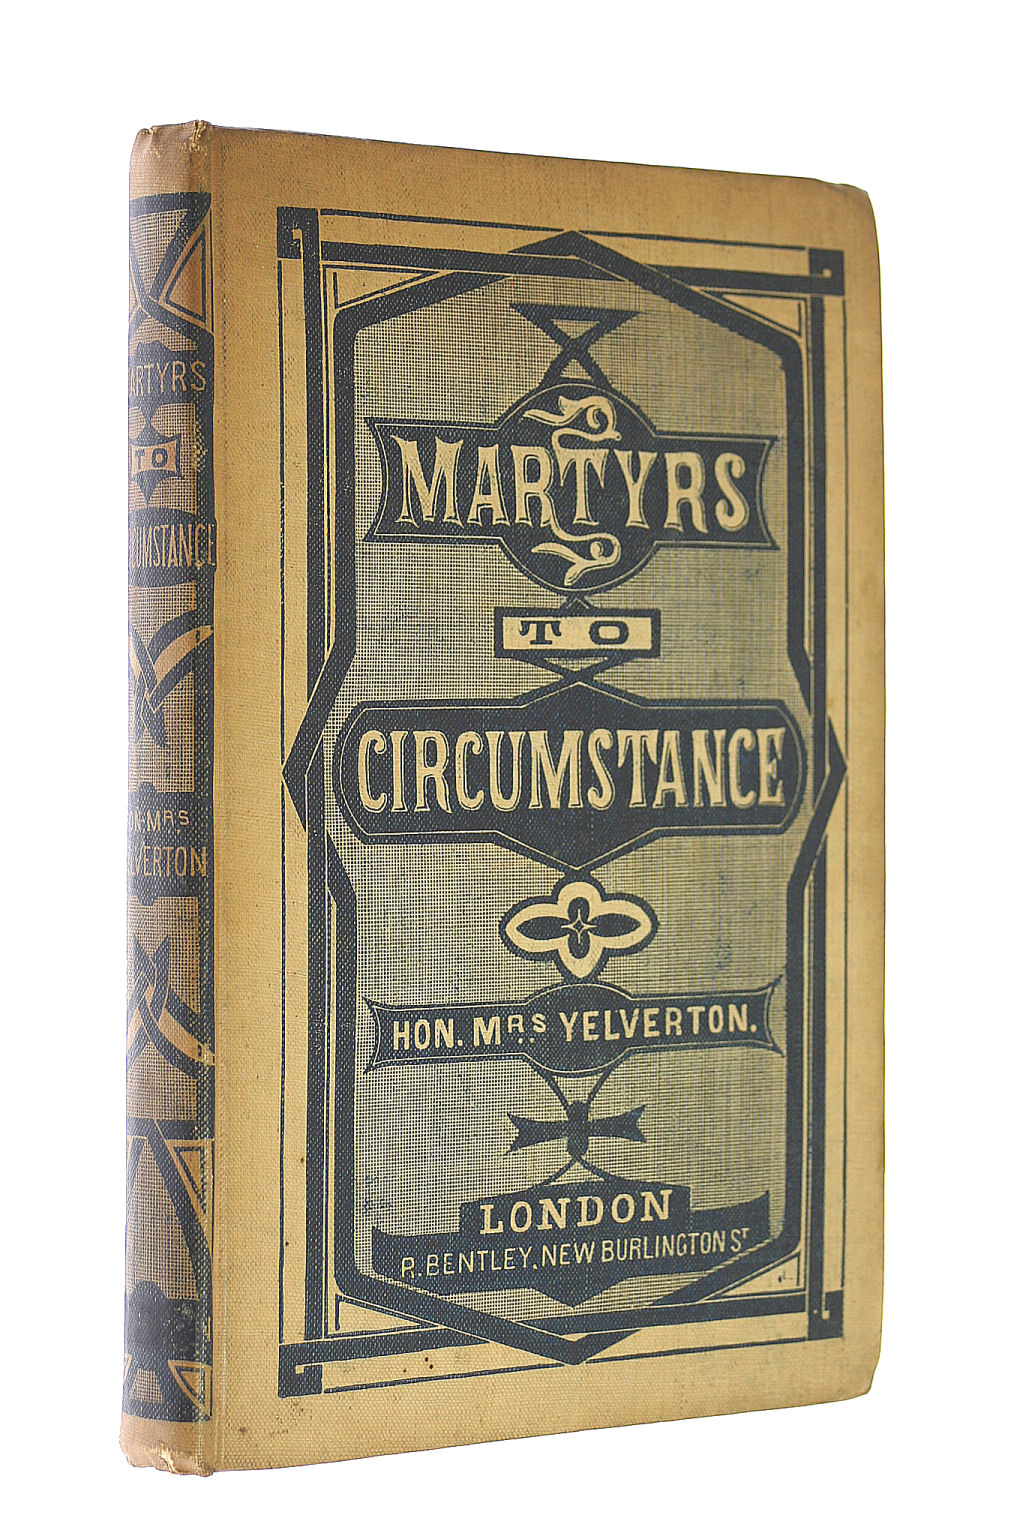 Image for Martyrs to circumstance, Part I